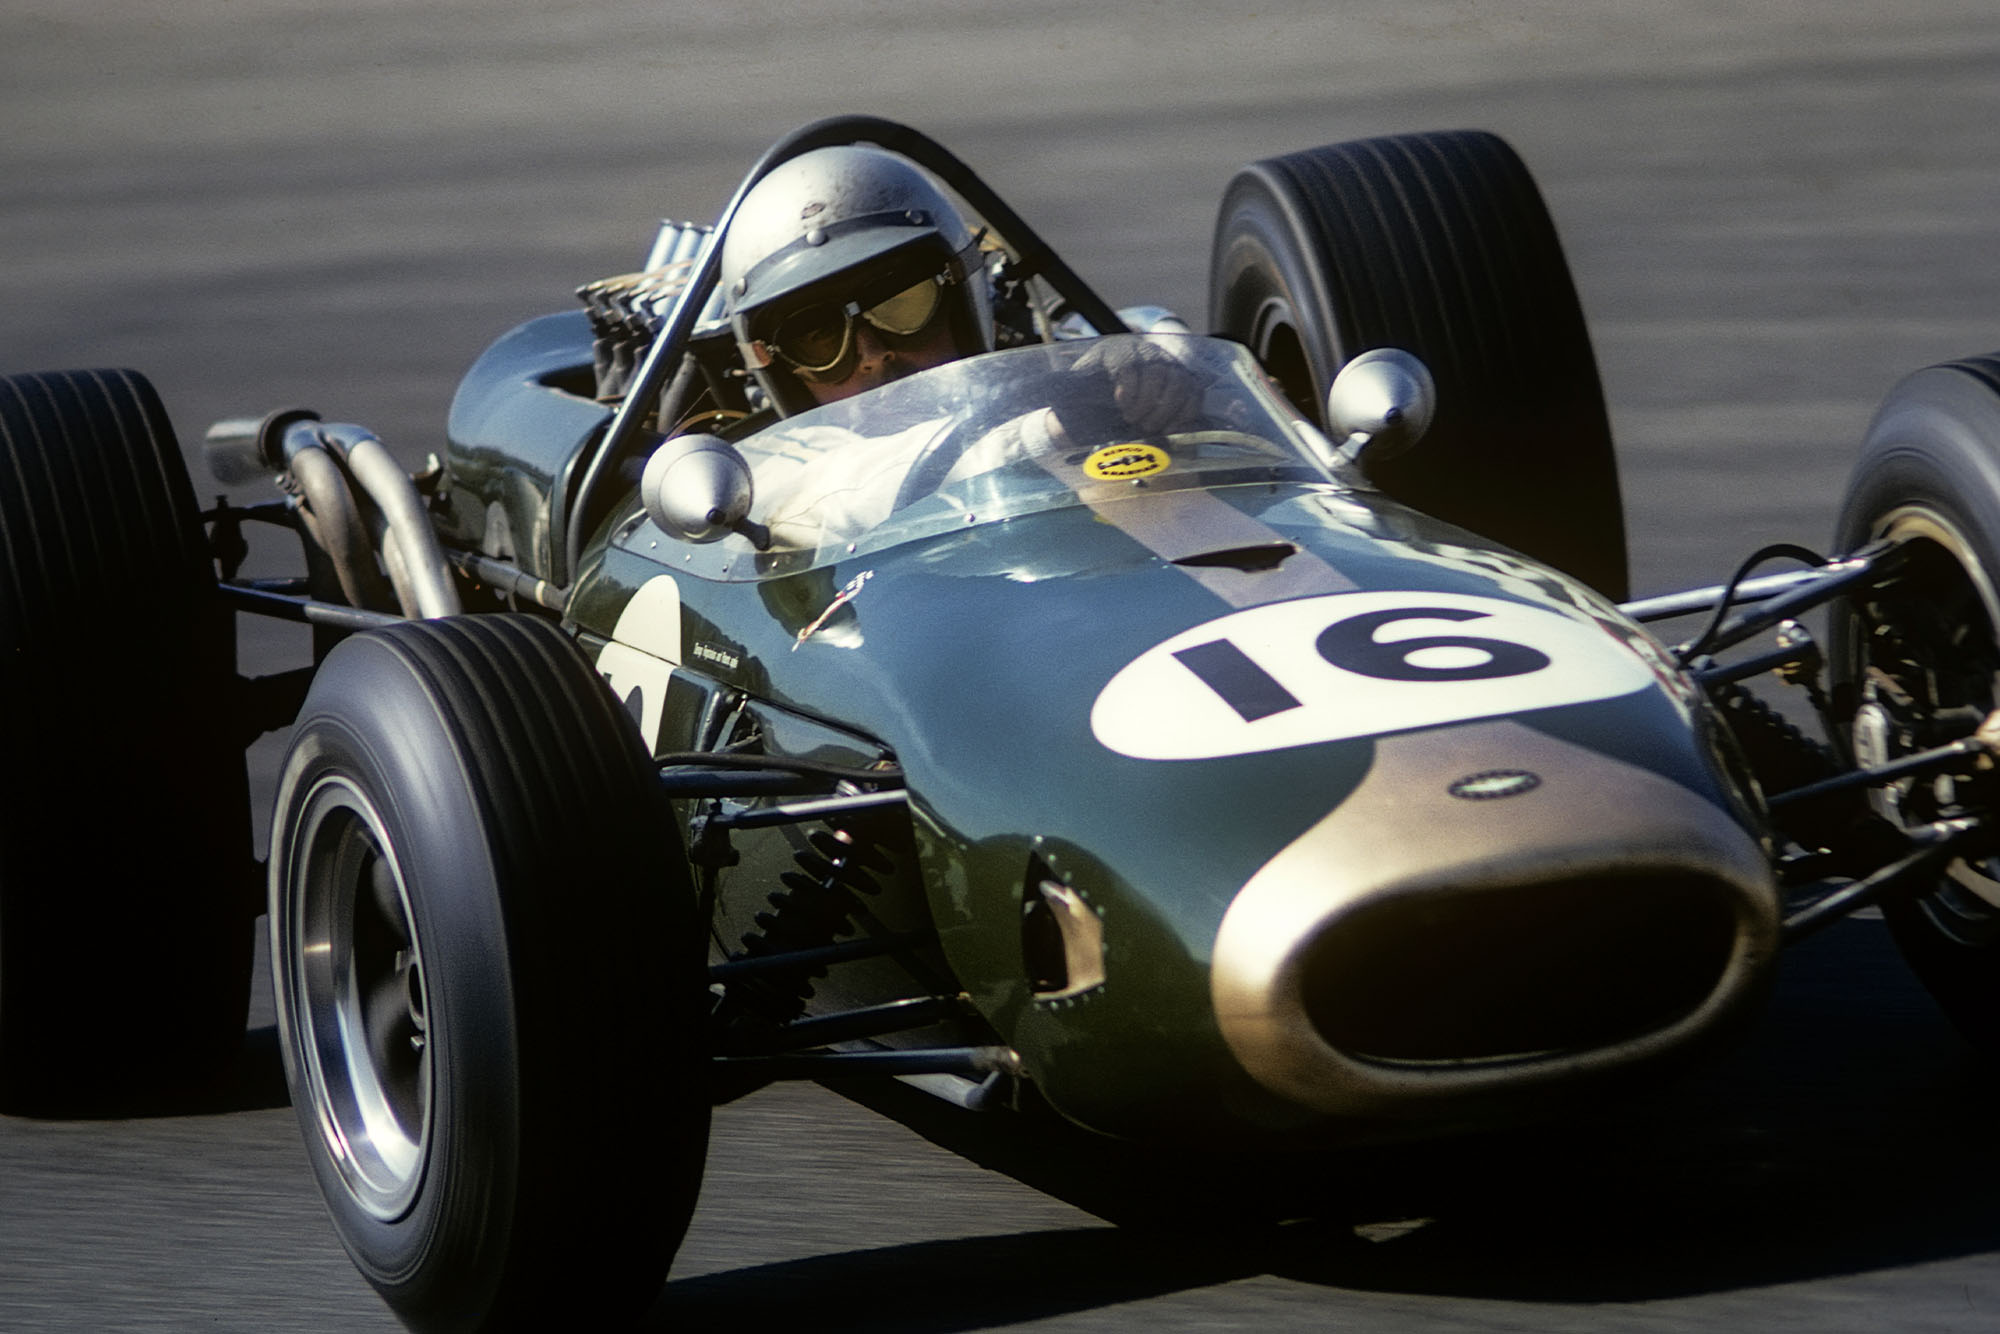 Jack Brabham, Brabham-Repco BT19, Grand Prix of the Netherlands, Circuit Park Zandvoort, 24 July 1966. A magnificent four wheel drift for Jack Brabham in the famous Tarzan curve on the Zandvoort circuit during the 1966 Grand Prix of Netherlands. (Photo by Bernard Cahier/Getty Images)